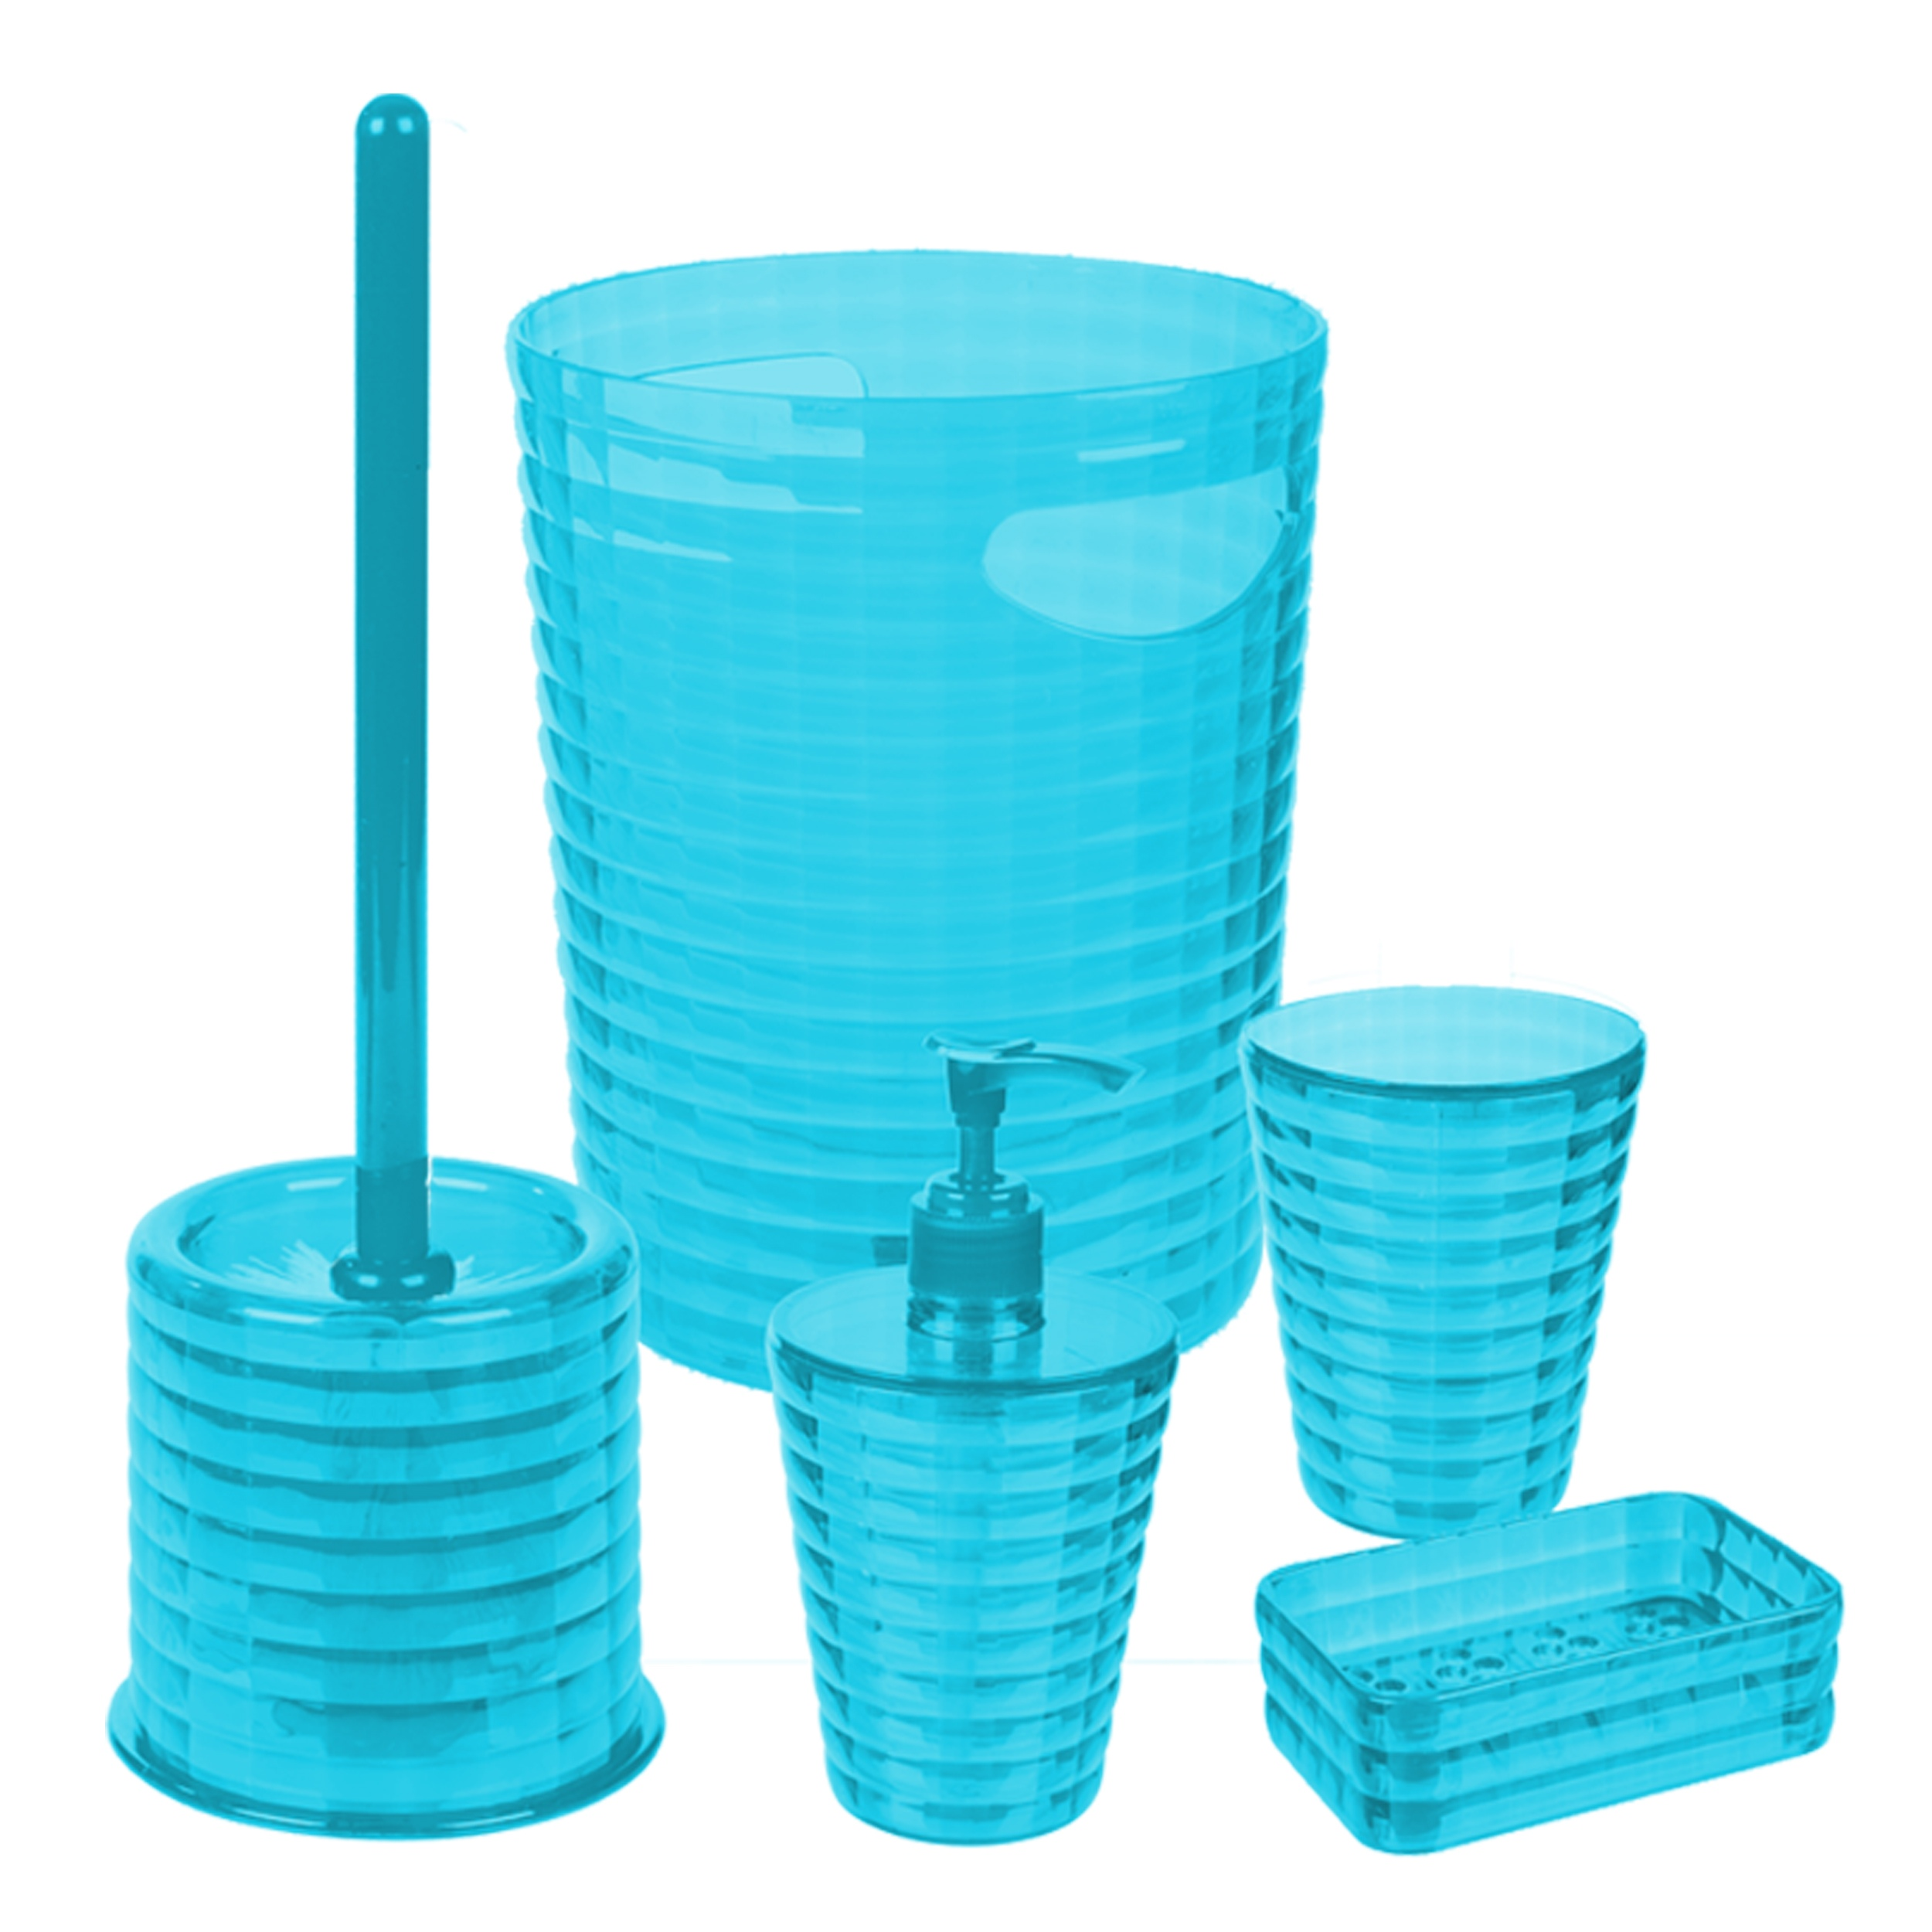 aqua coloured bathroom accessories. Item Specifics 5pc Colour Match Bathroom Accessory Set Soap Dish Dispenser Bin